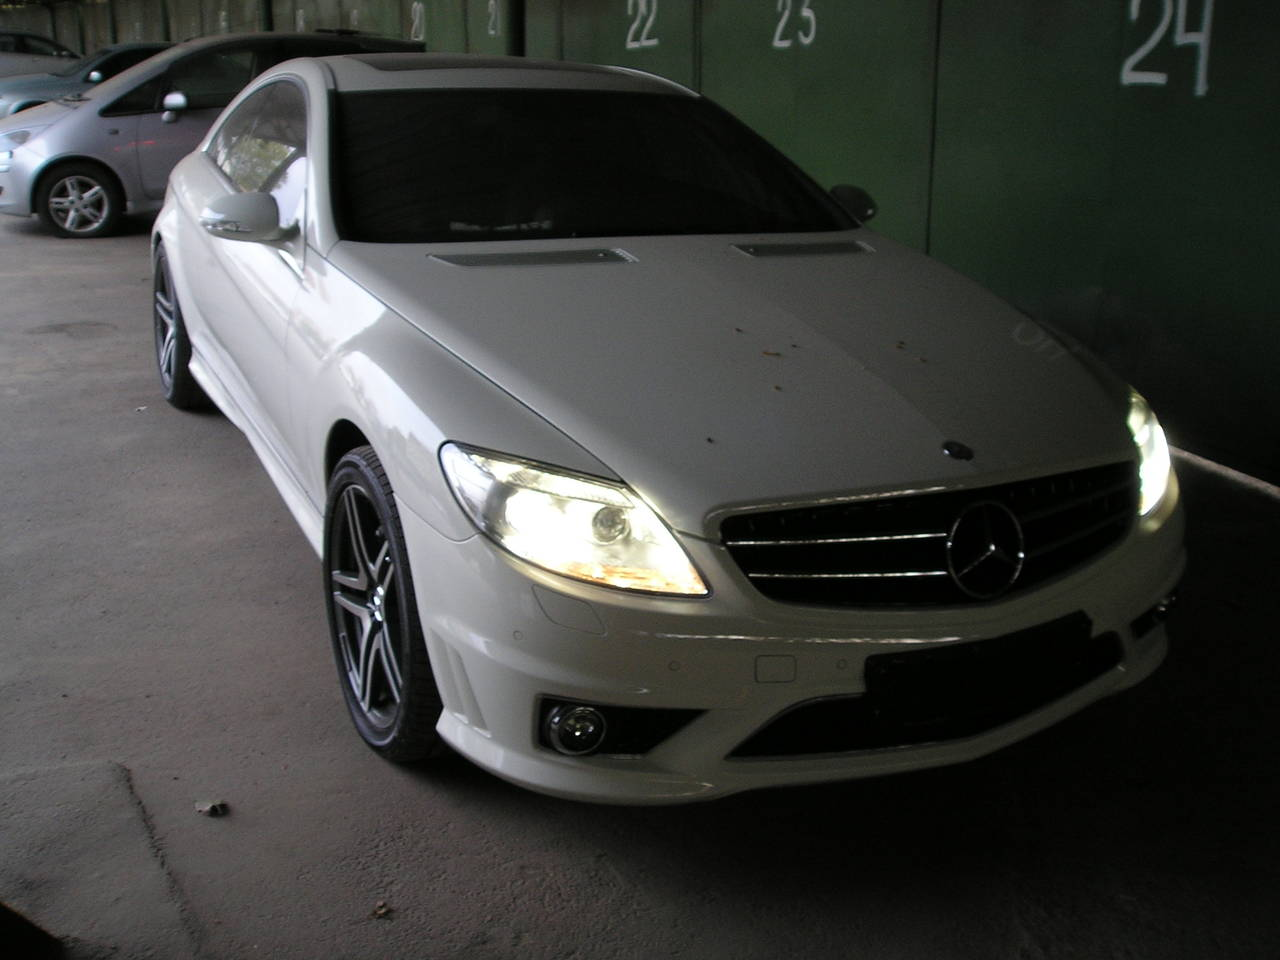 2008 mercedes benz cl class for sale 5 0 gasoline fr or for Mercedes benz cl class for sale